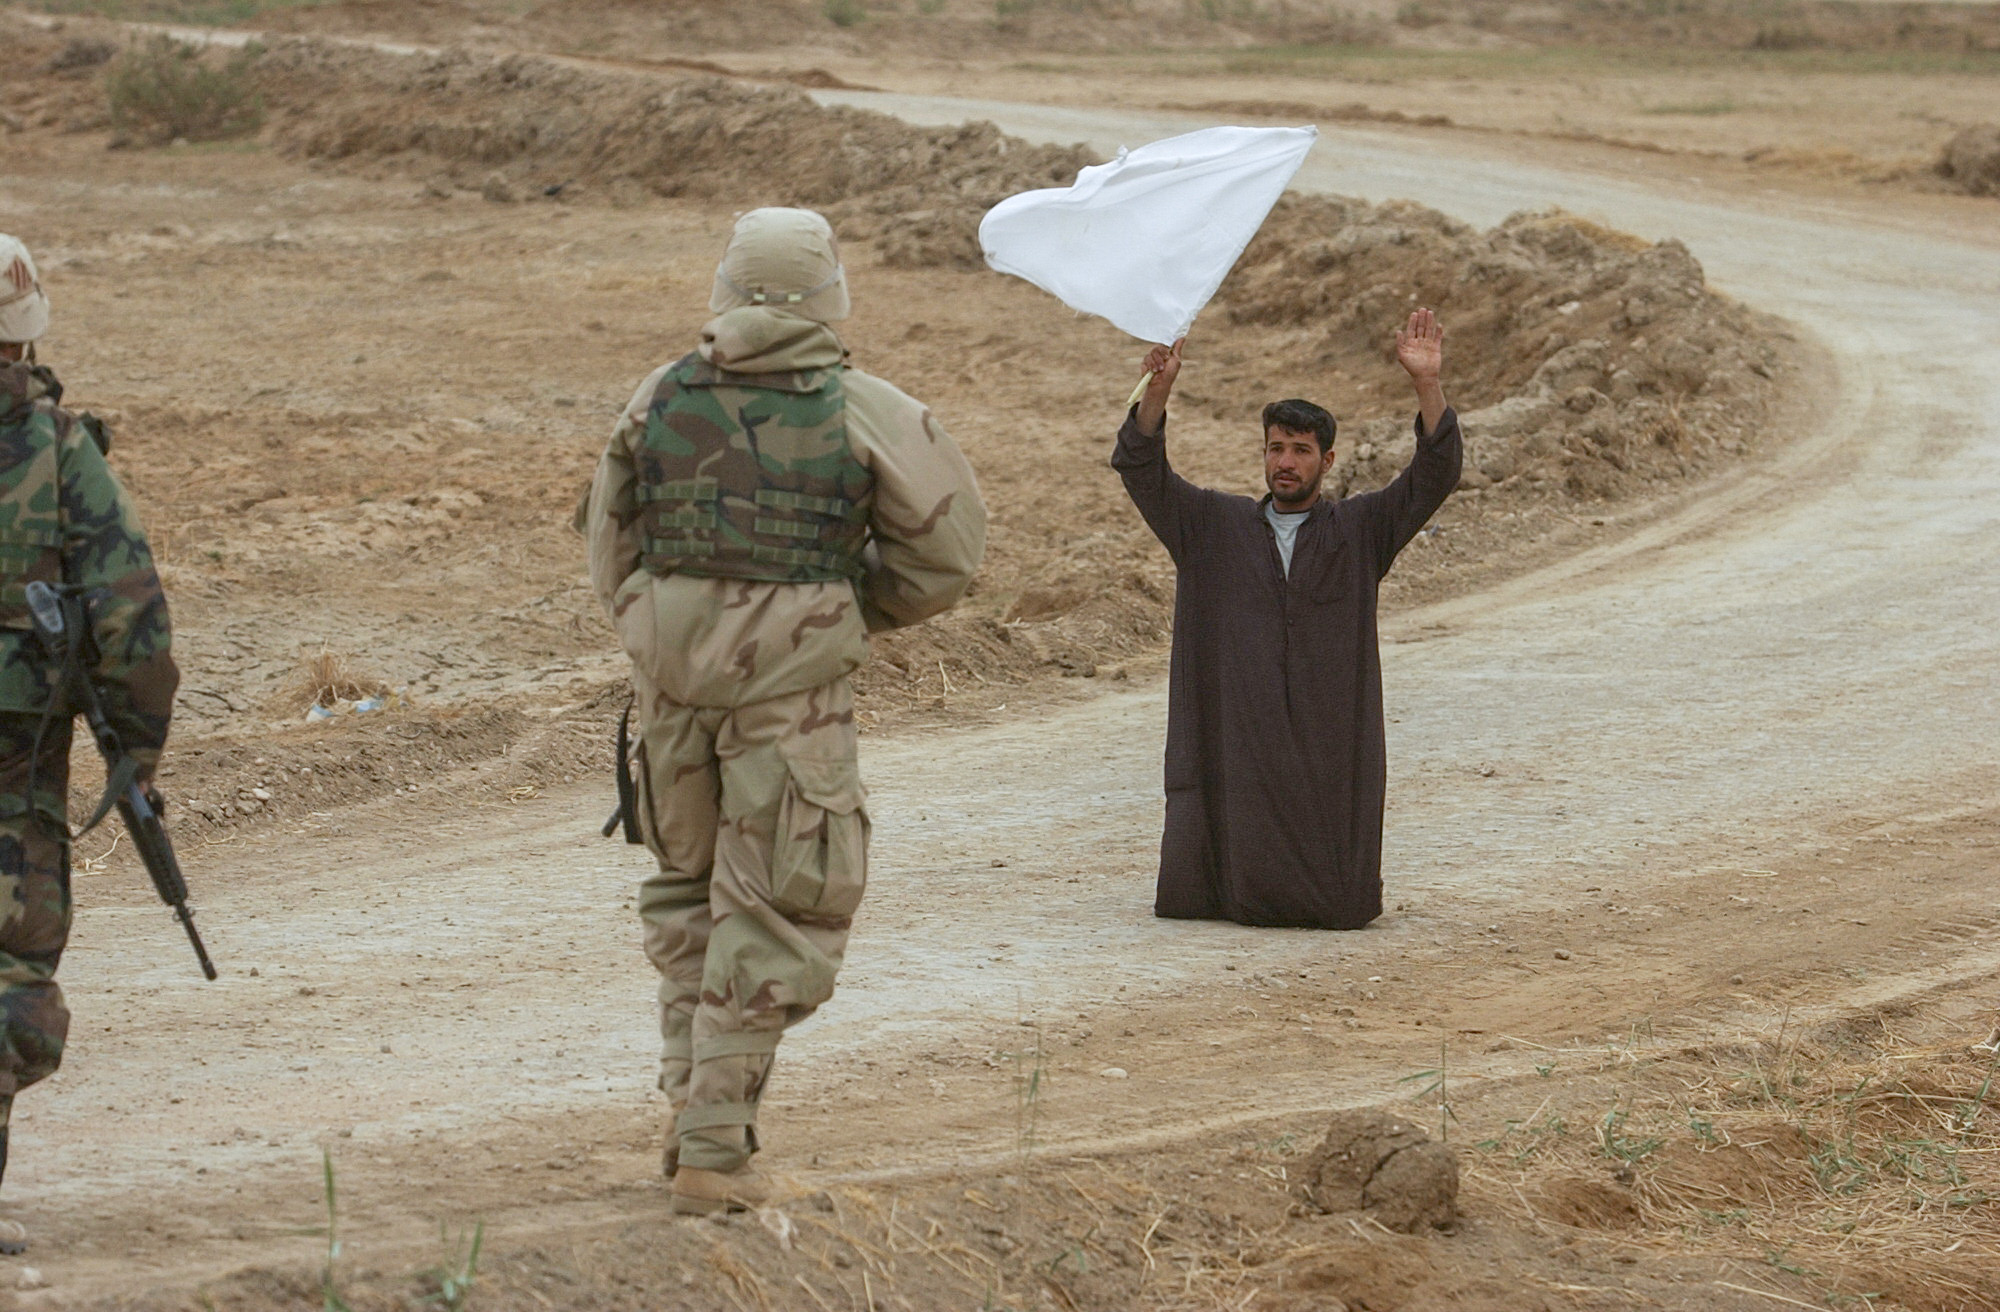 An Iraqi surrenders to Soldiers from 3rd ID. (Warren Zinn/Army Times)